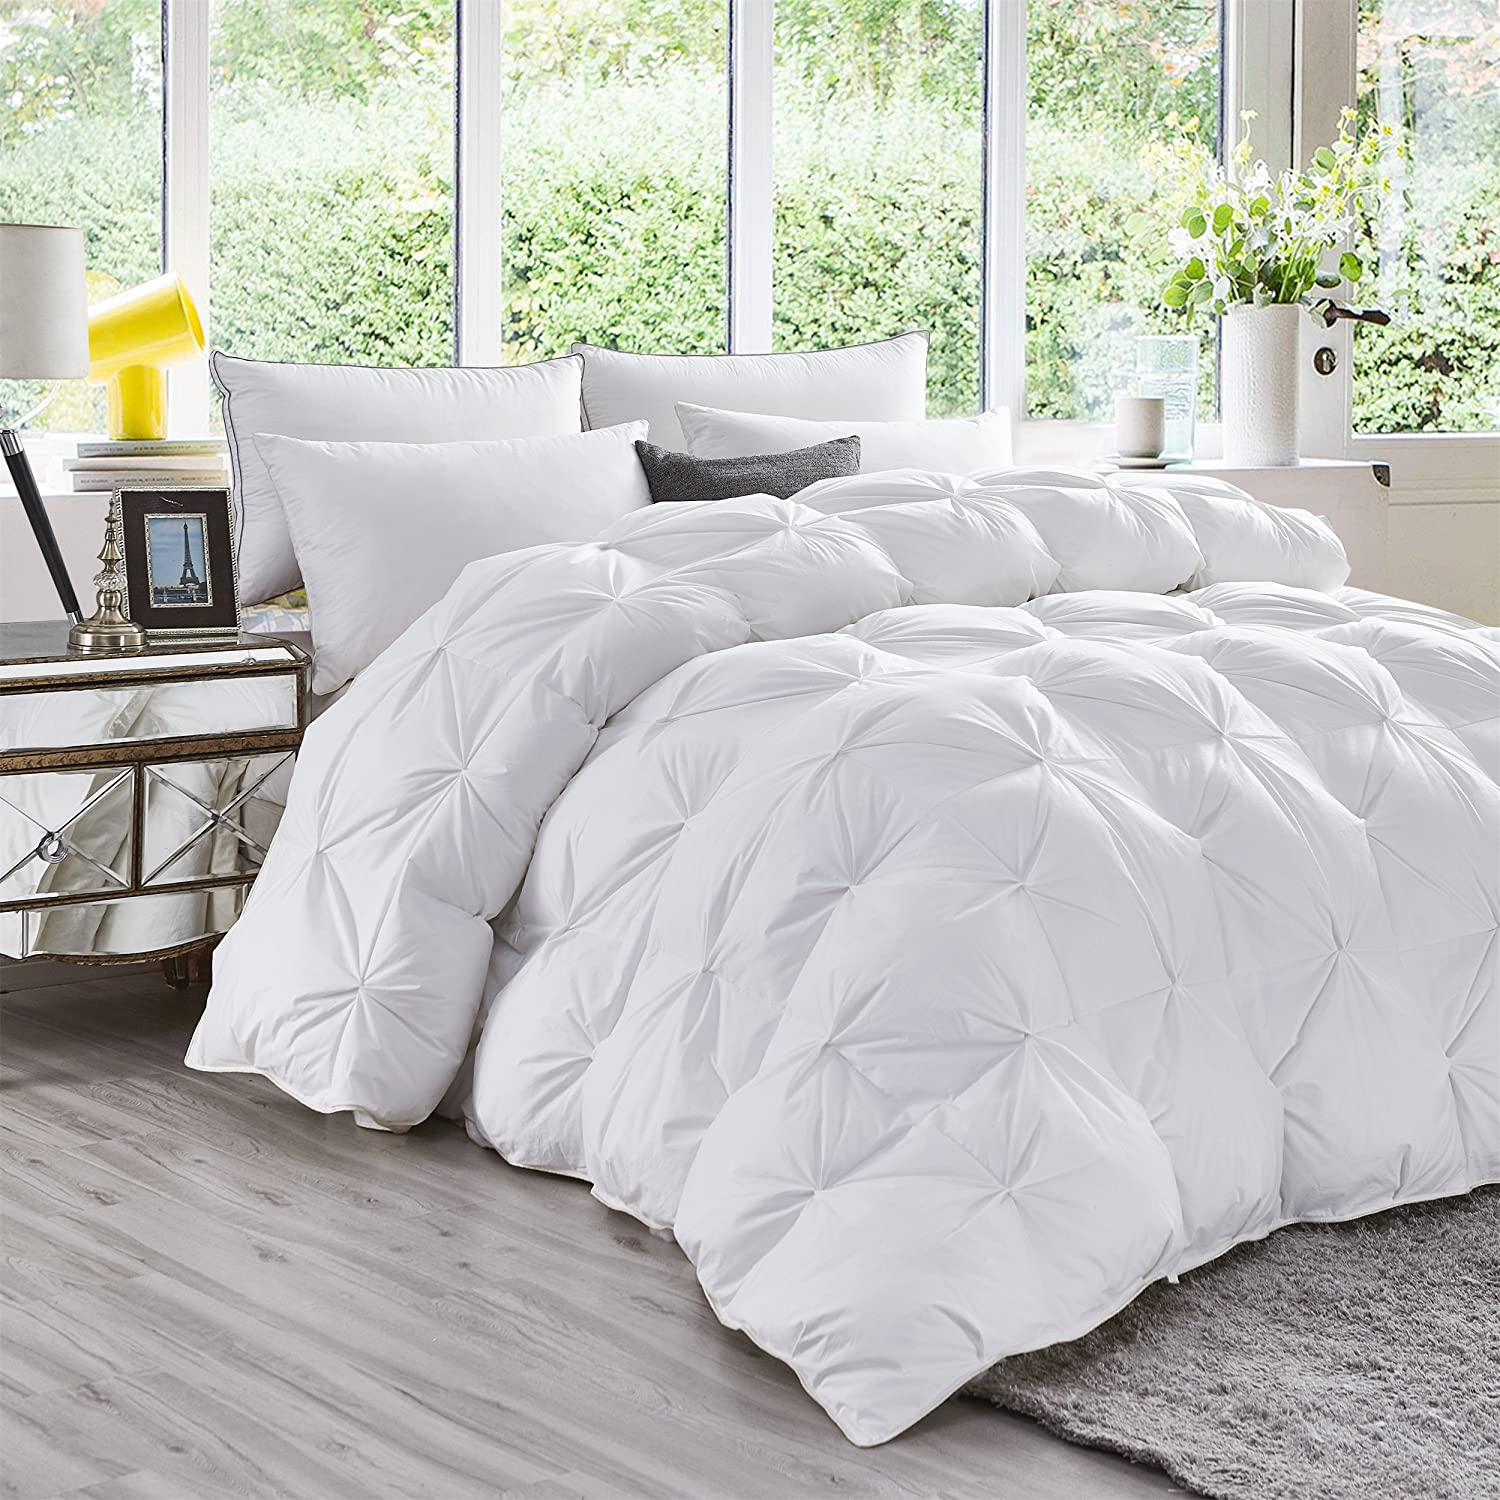 LUXURIOUS All-Season Goose Down Comforter Queen Size Duvet Insert, Exquisite PINCH PLEAT Design, Premium Baffle Box, 1200 Thread Count 100% Egyptian Cotton White